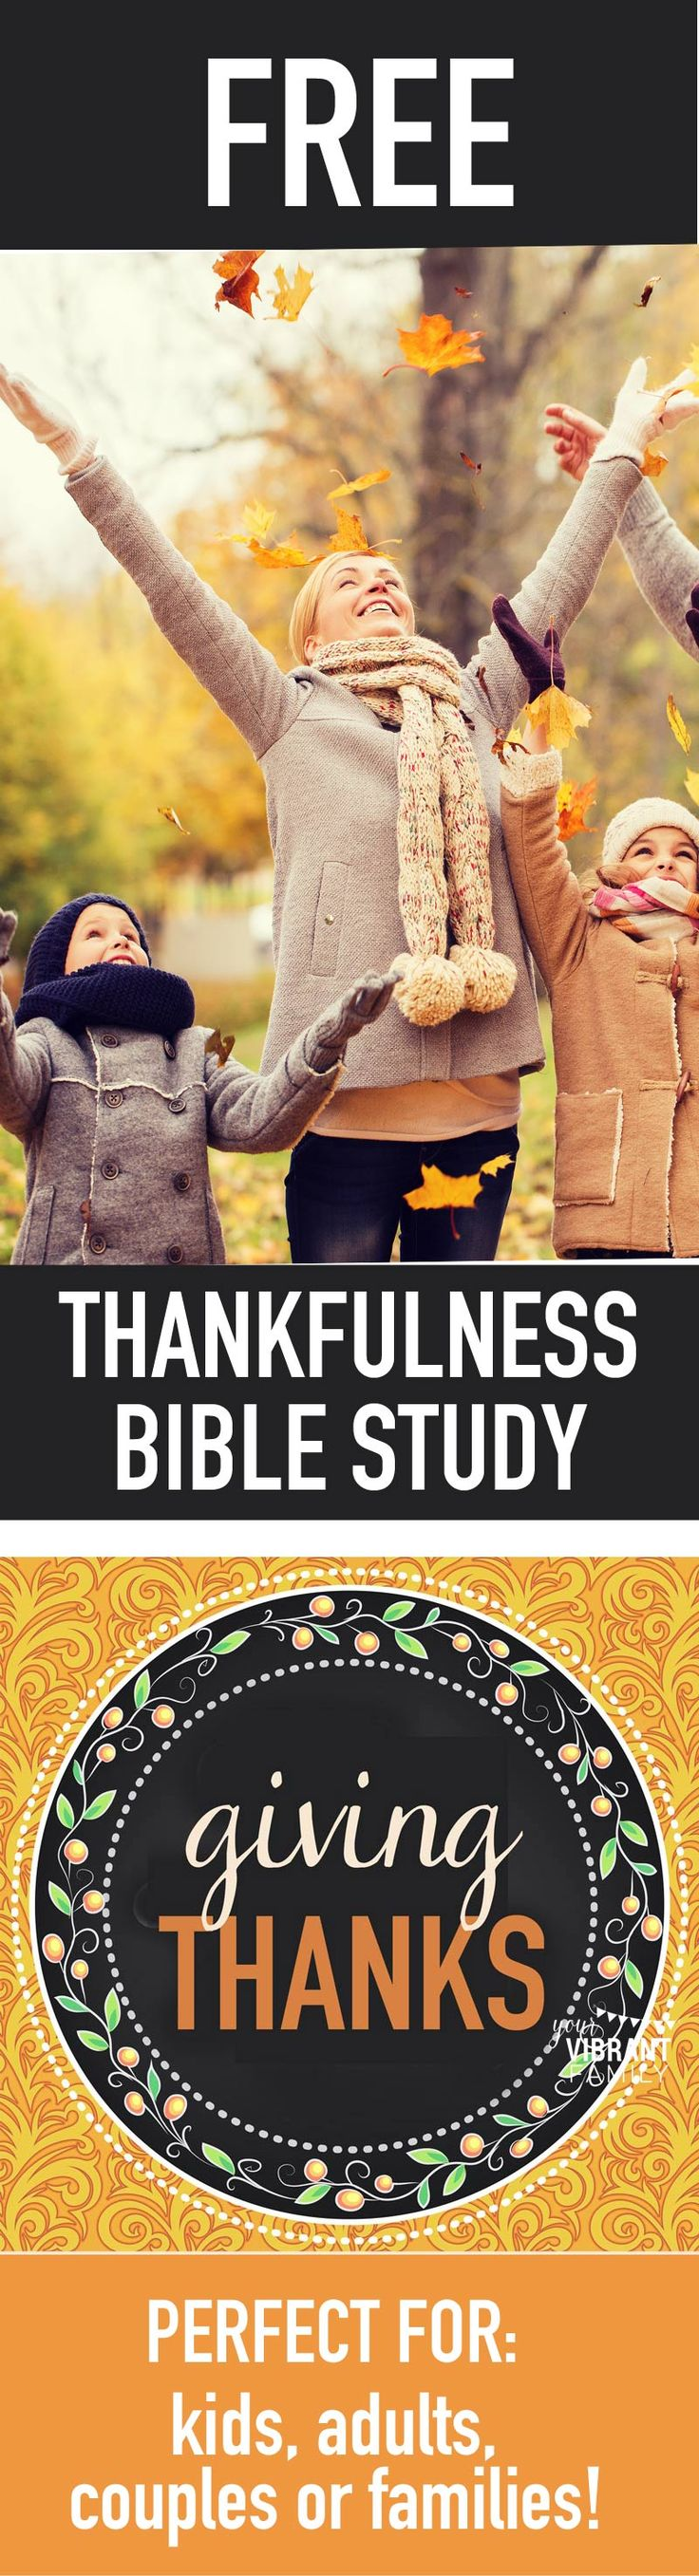 Thanksgiving, in the Bible. Bible study on Thanksgiving.